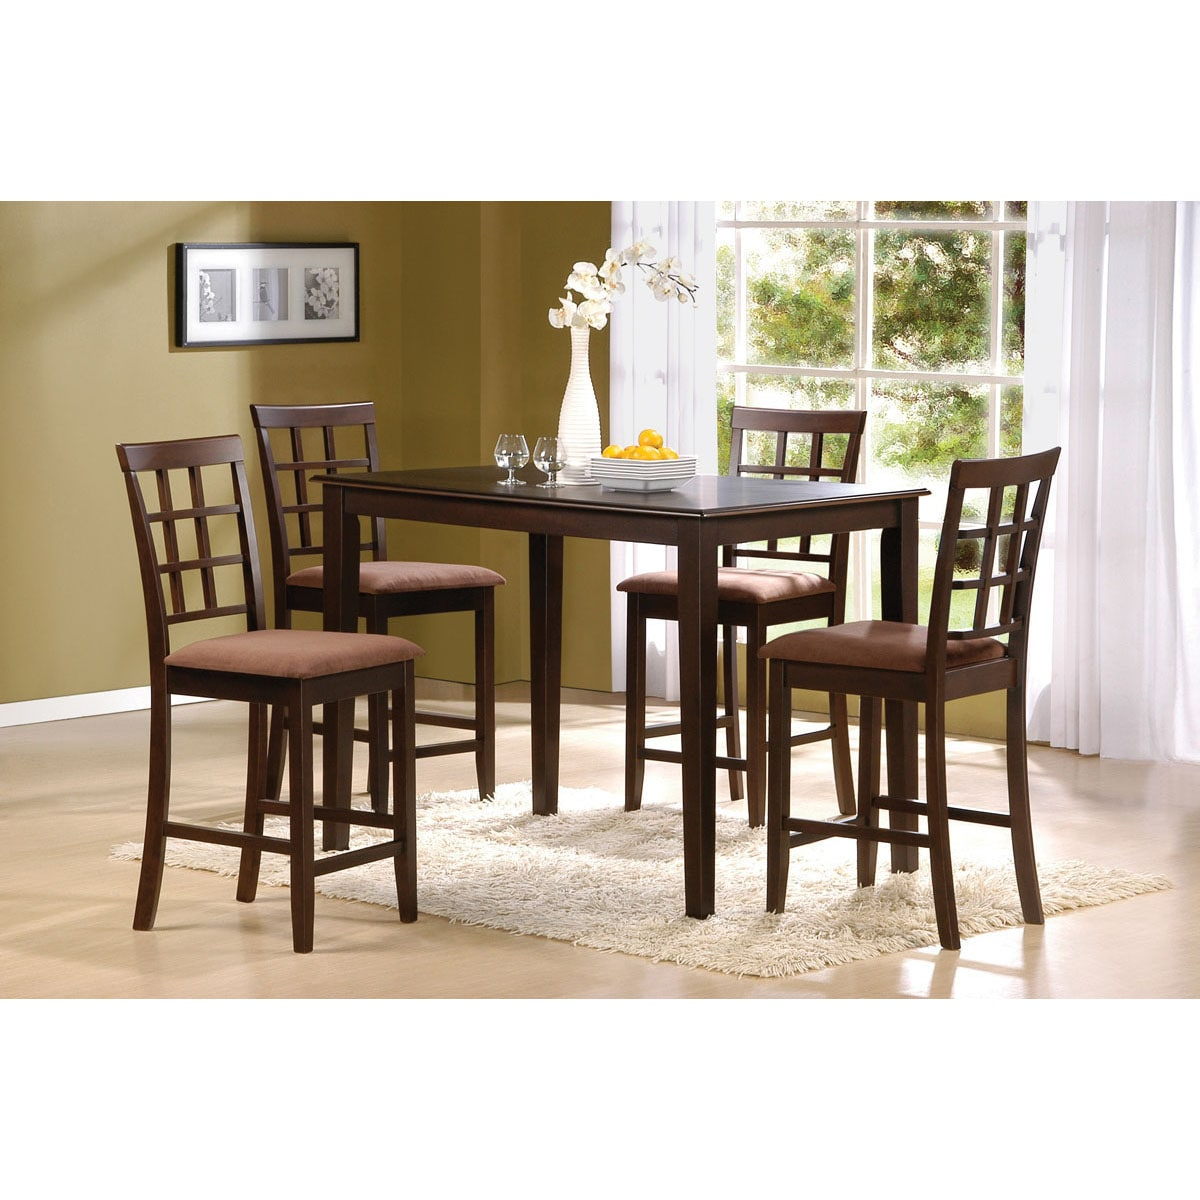 Cardiff 5 Piece Espresso Finish Pack Counter Height Dining